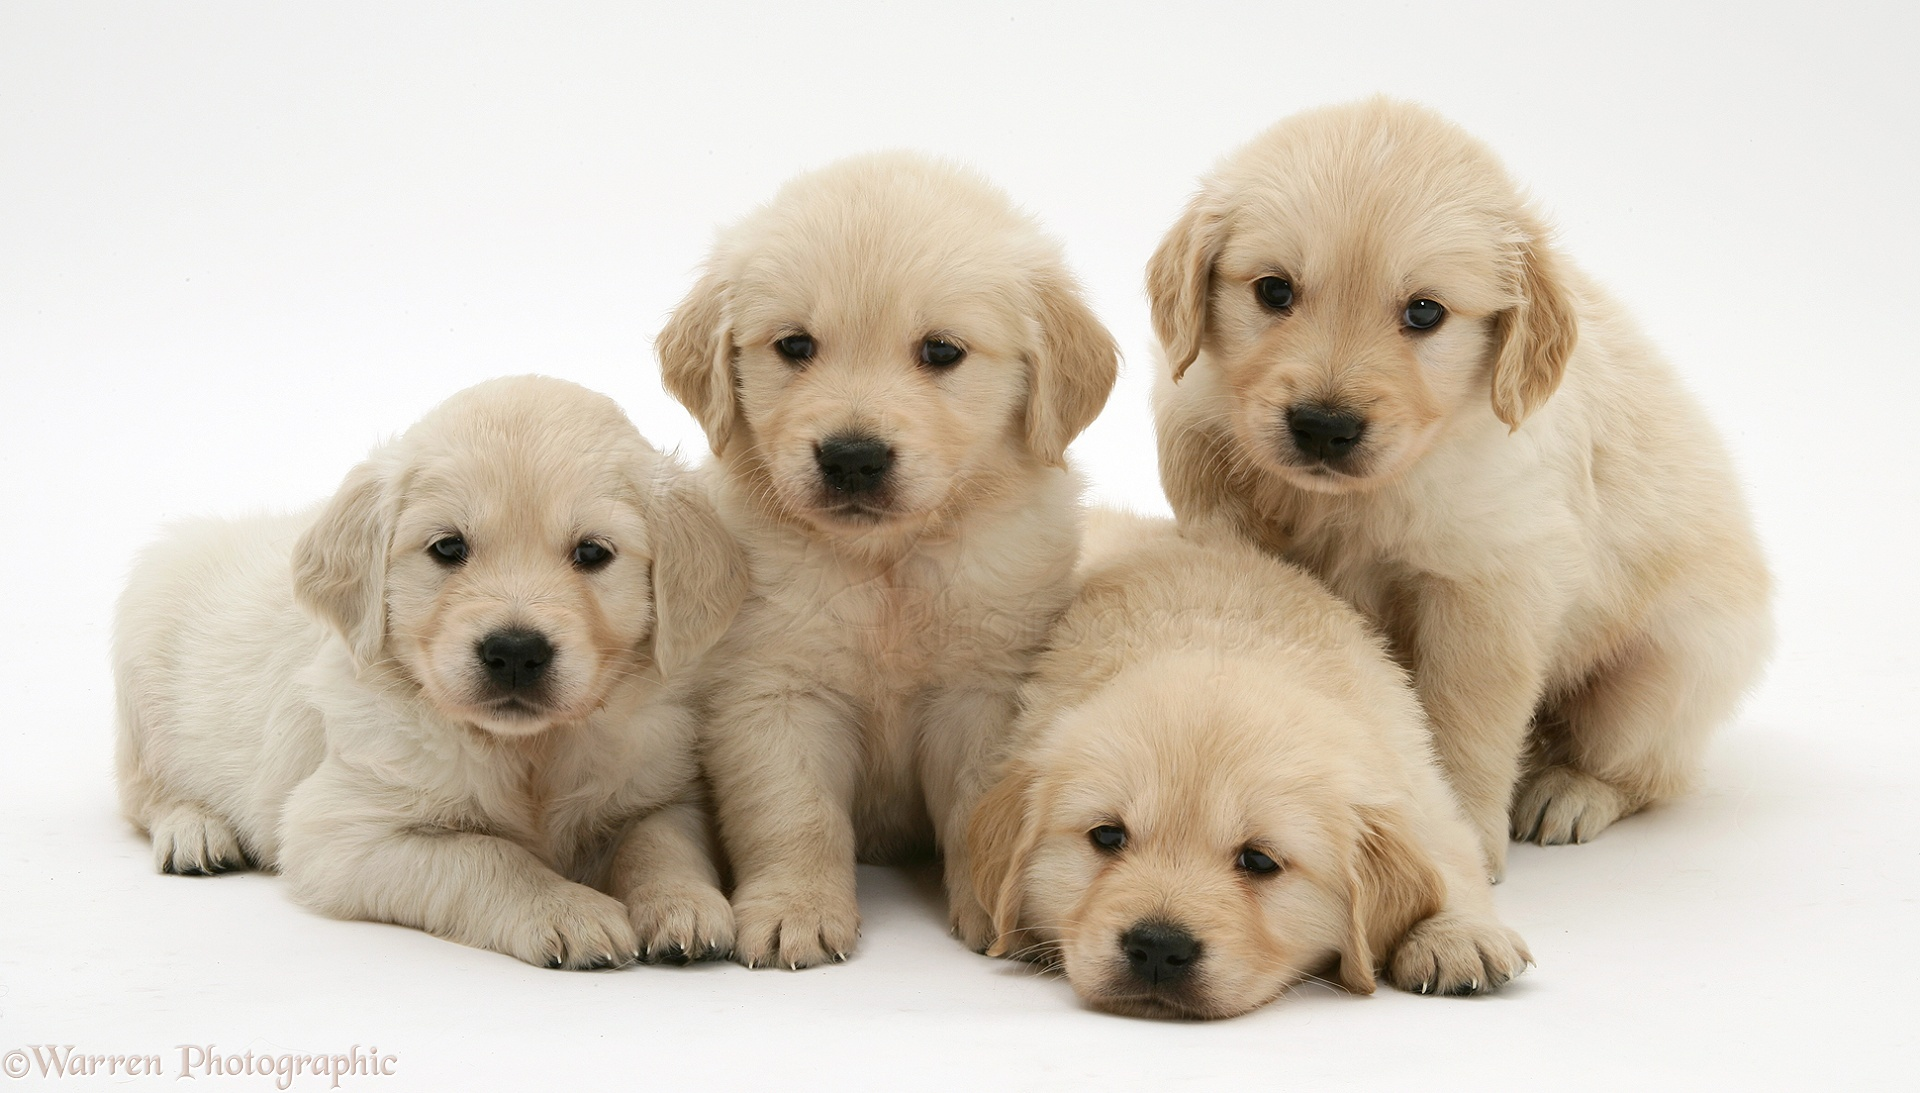 Dogs Four Golden Retriever Puppies In A Row Photo Wp21507